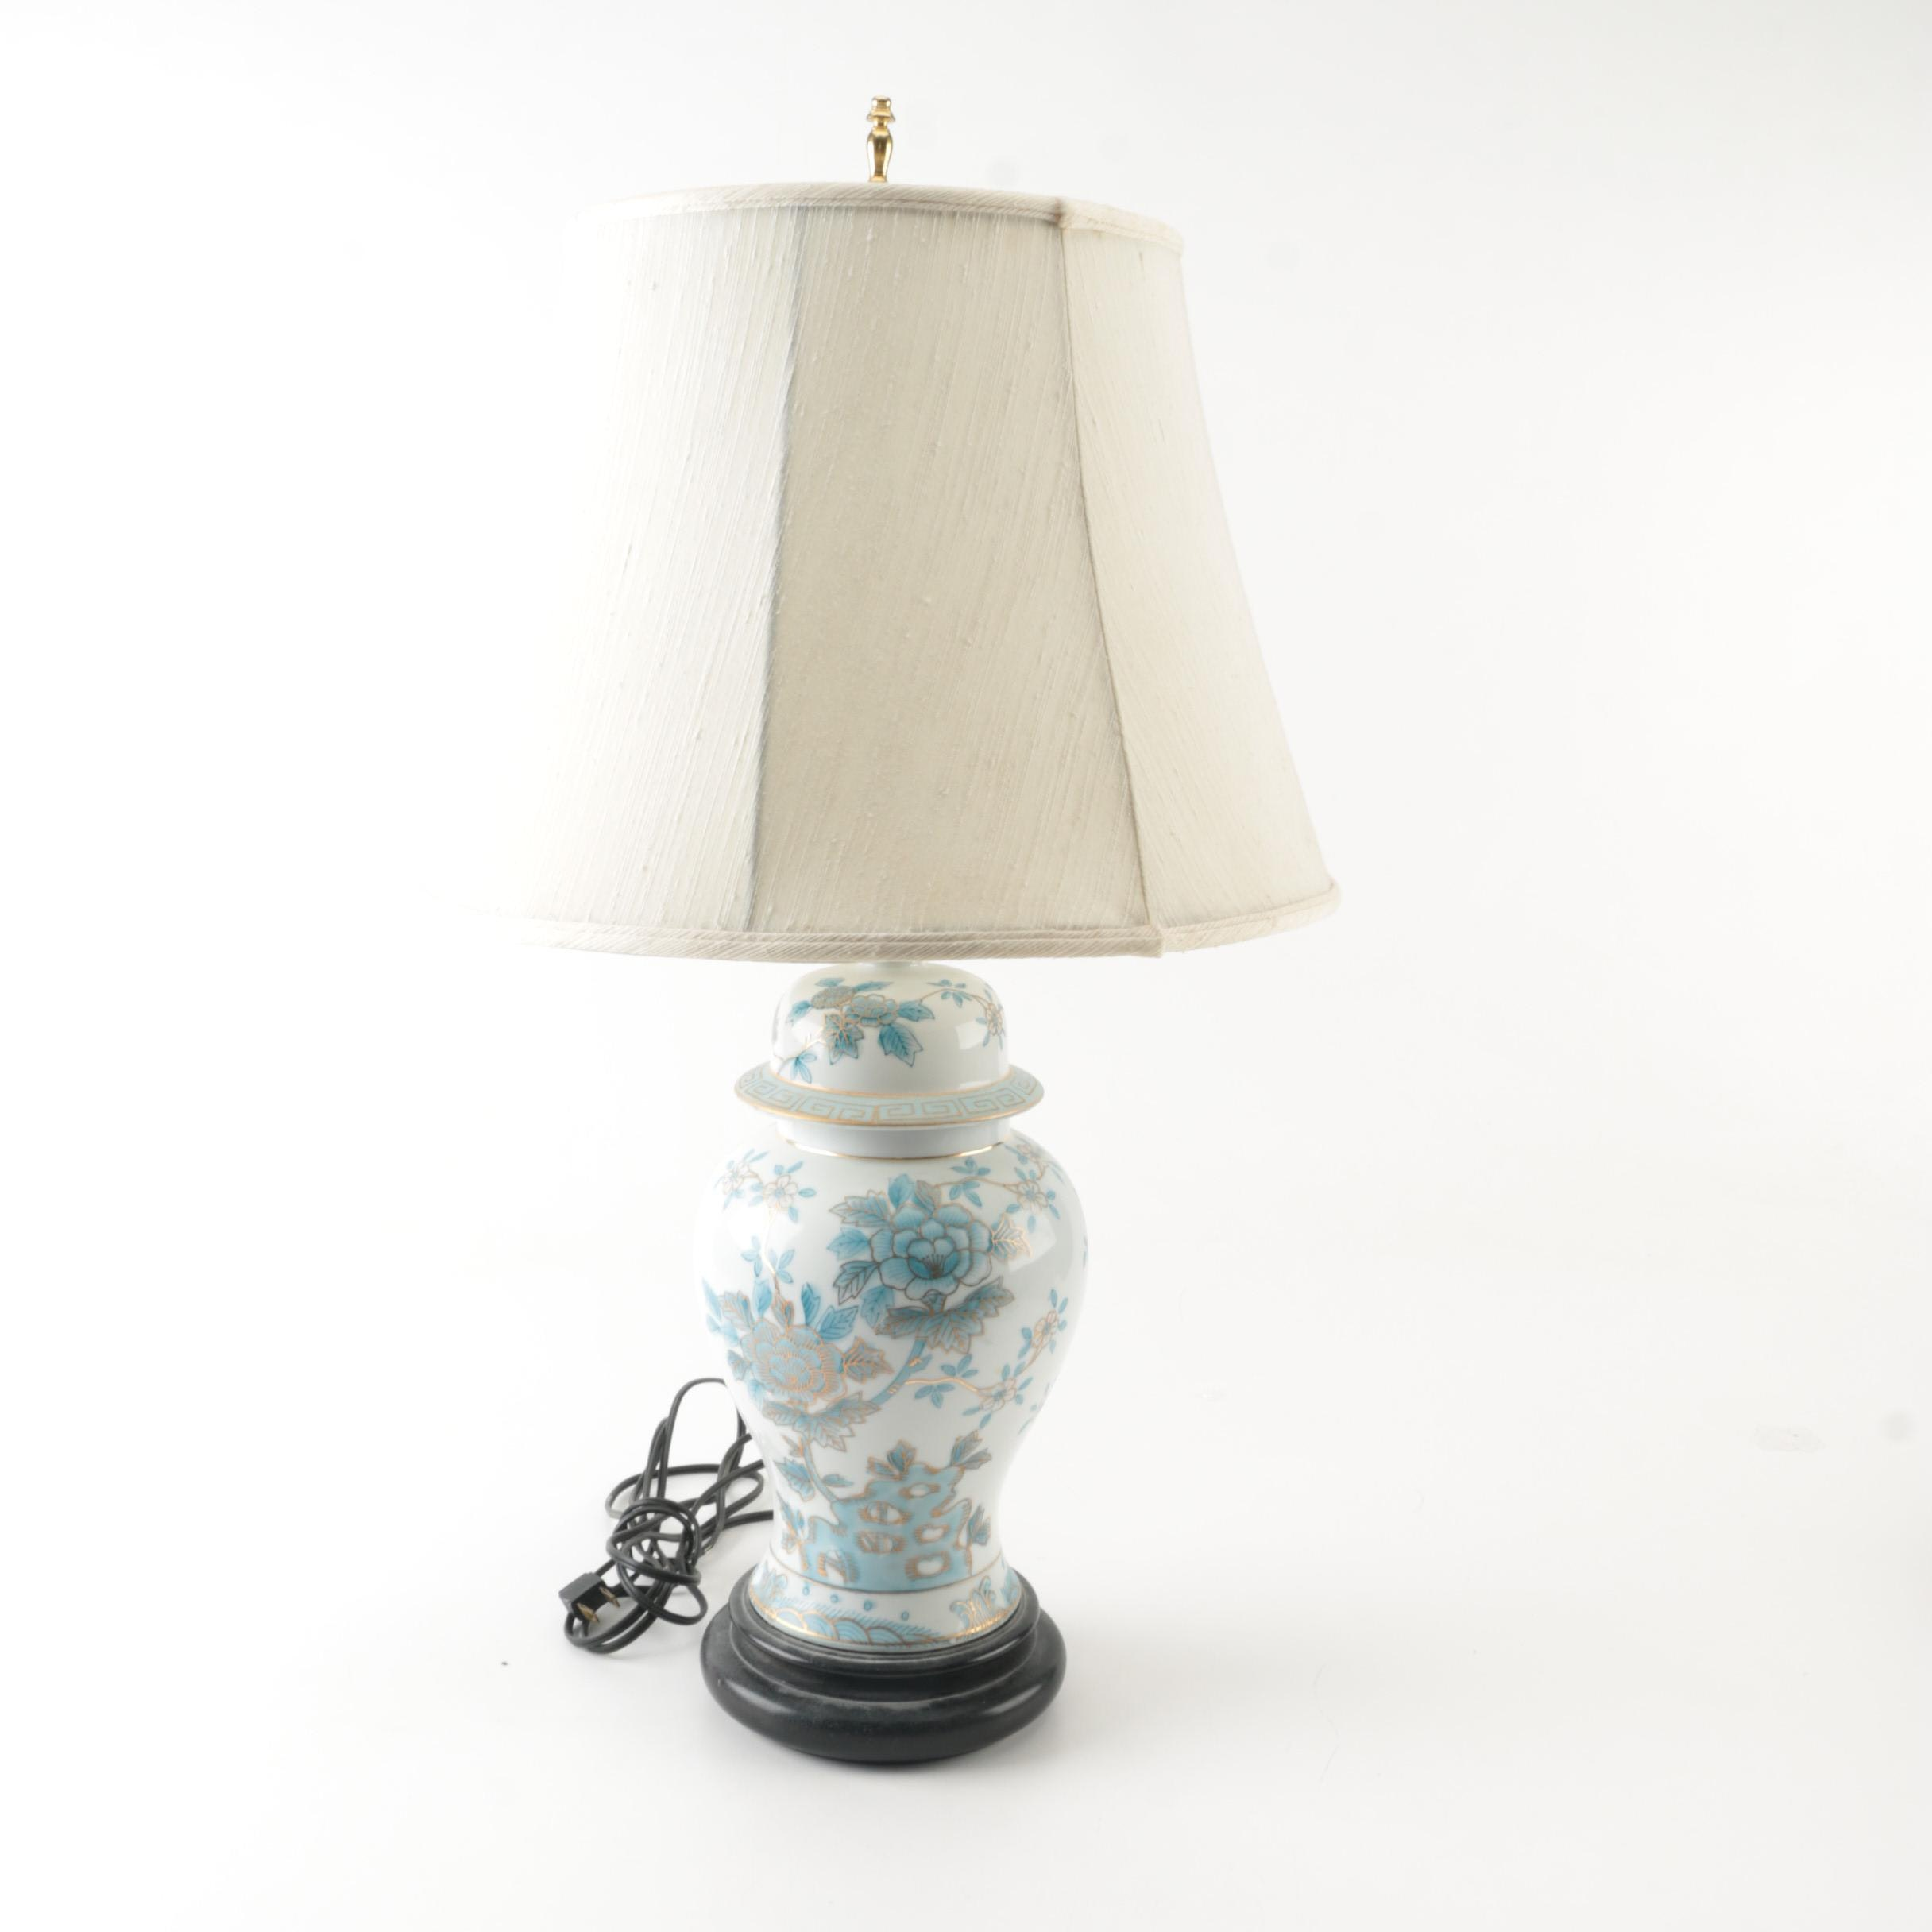 Vintage Asian Inspired Ceramic Table Lamp with Shade